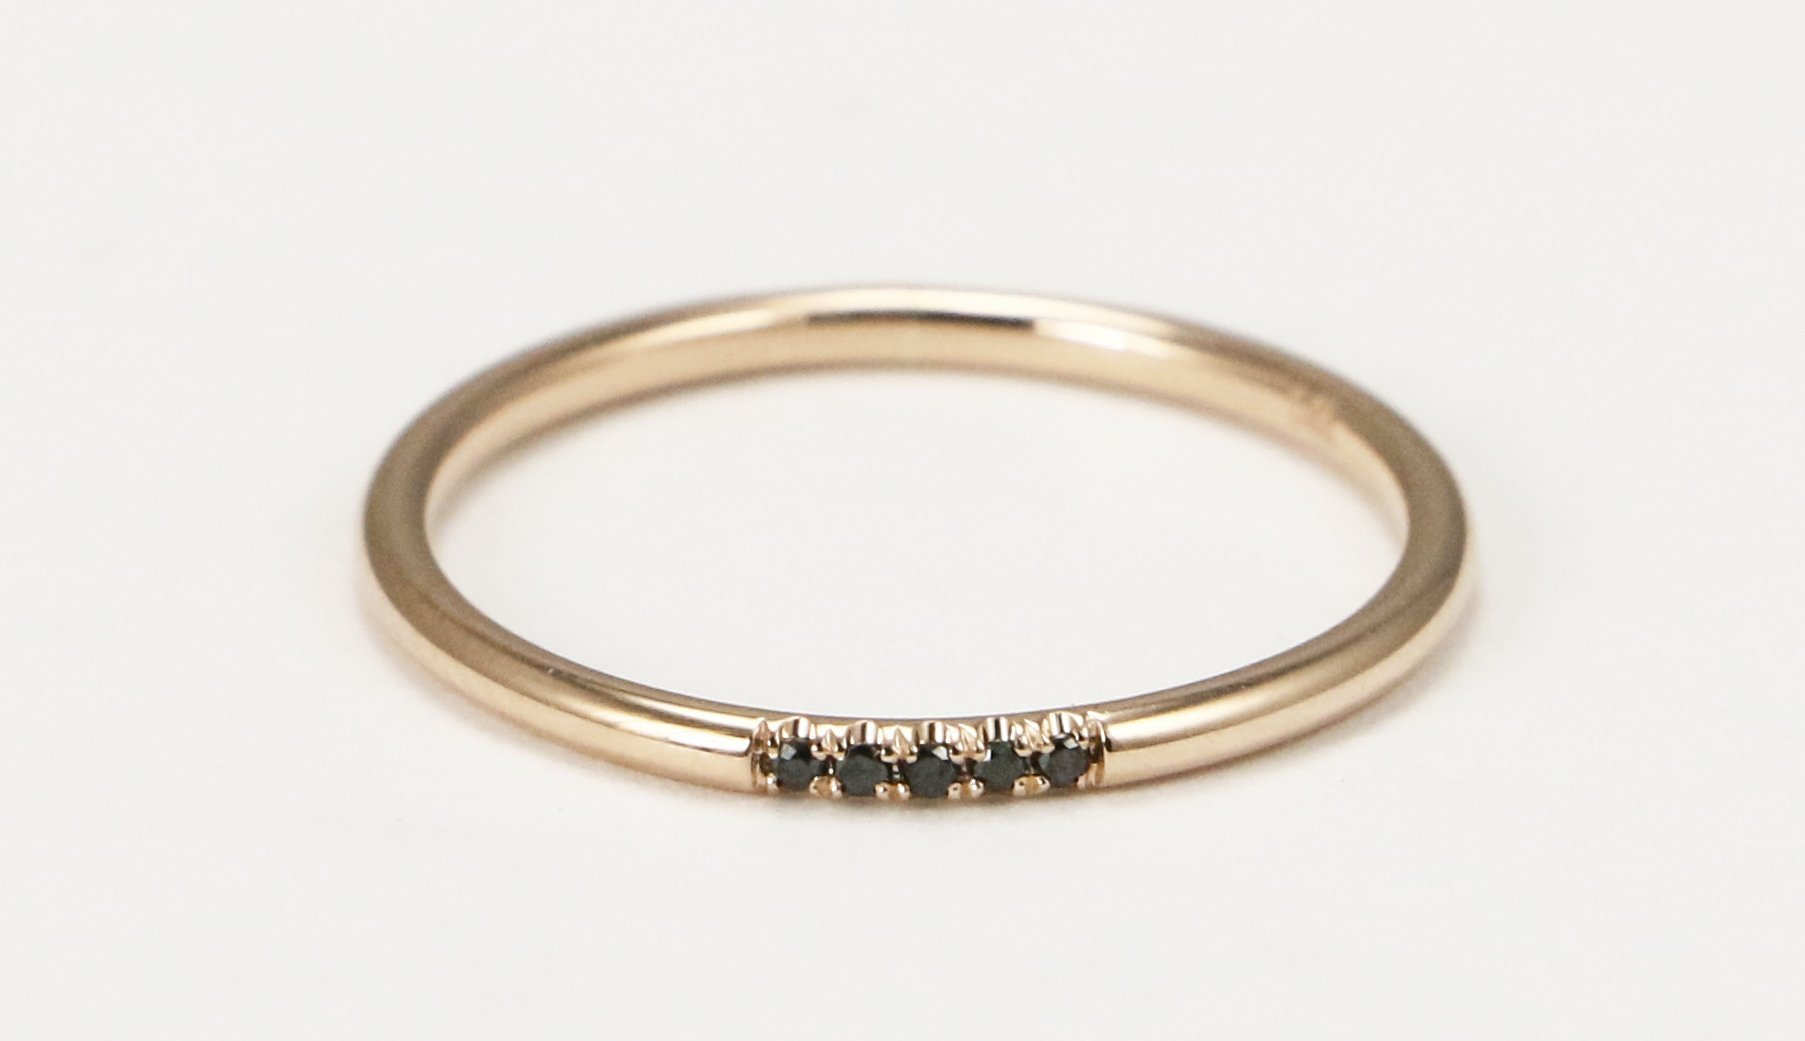 14k Rose Gold Black Diamond Wedding Band, Black Diamond Stacking Ring by Ice on Fire Jewelry